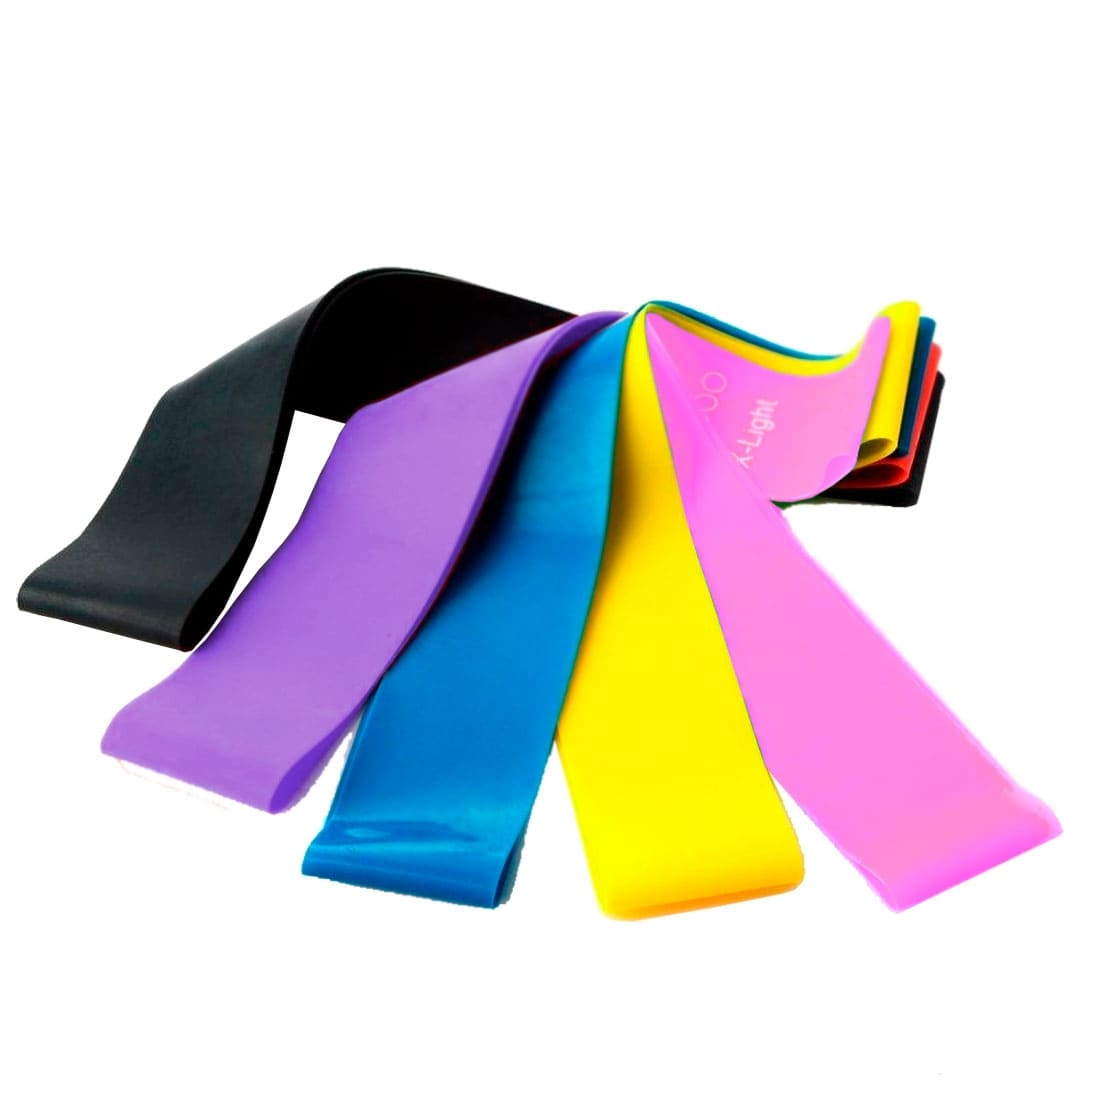 GESS Resistance band YOGA BAND FITNESS BAND, 5 PCS. INCLUDED, DIFFERENT WEIGHT TUP to 12 KG GESS FLEX SET - GESS